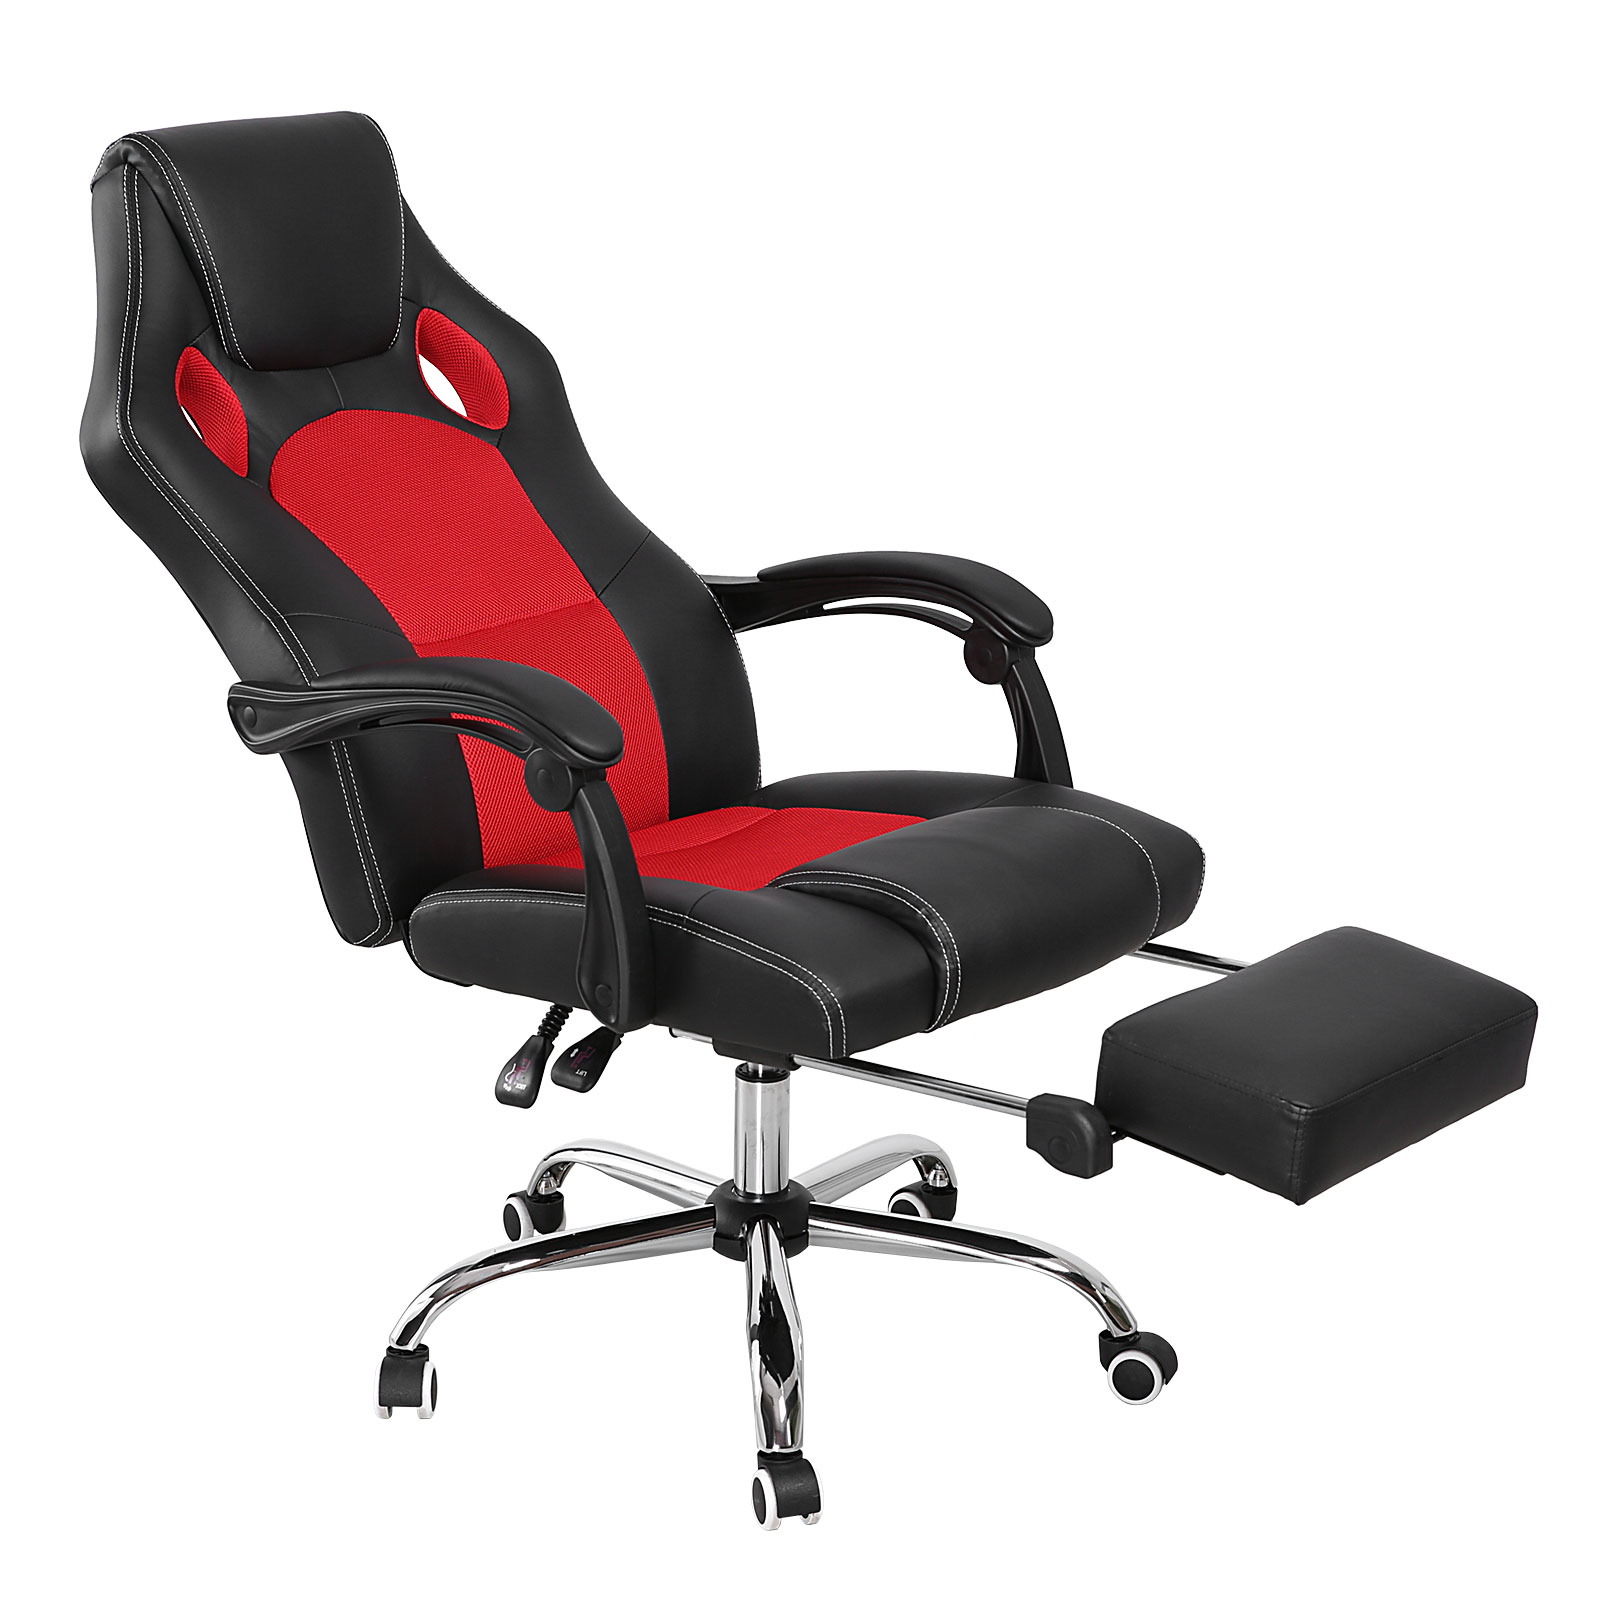 how much weight can a gaming chair hold top 10 chairs 2018 racing office recliner relax executive